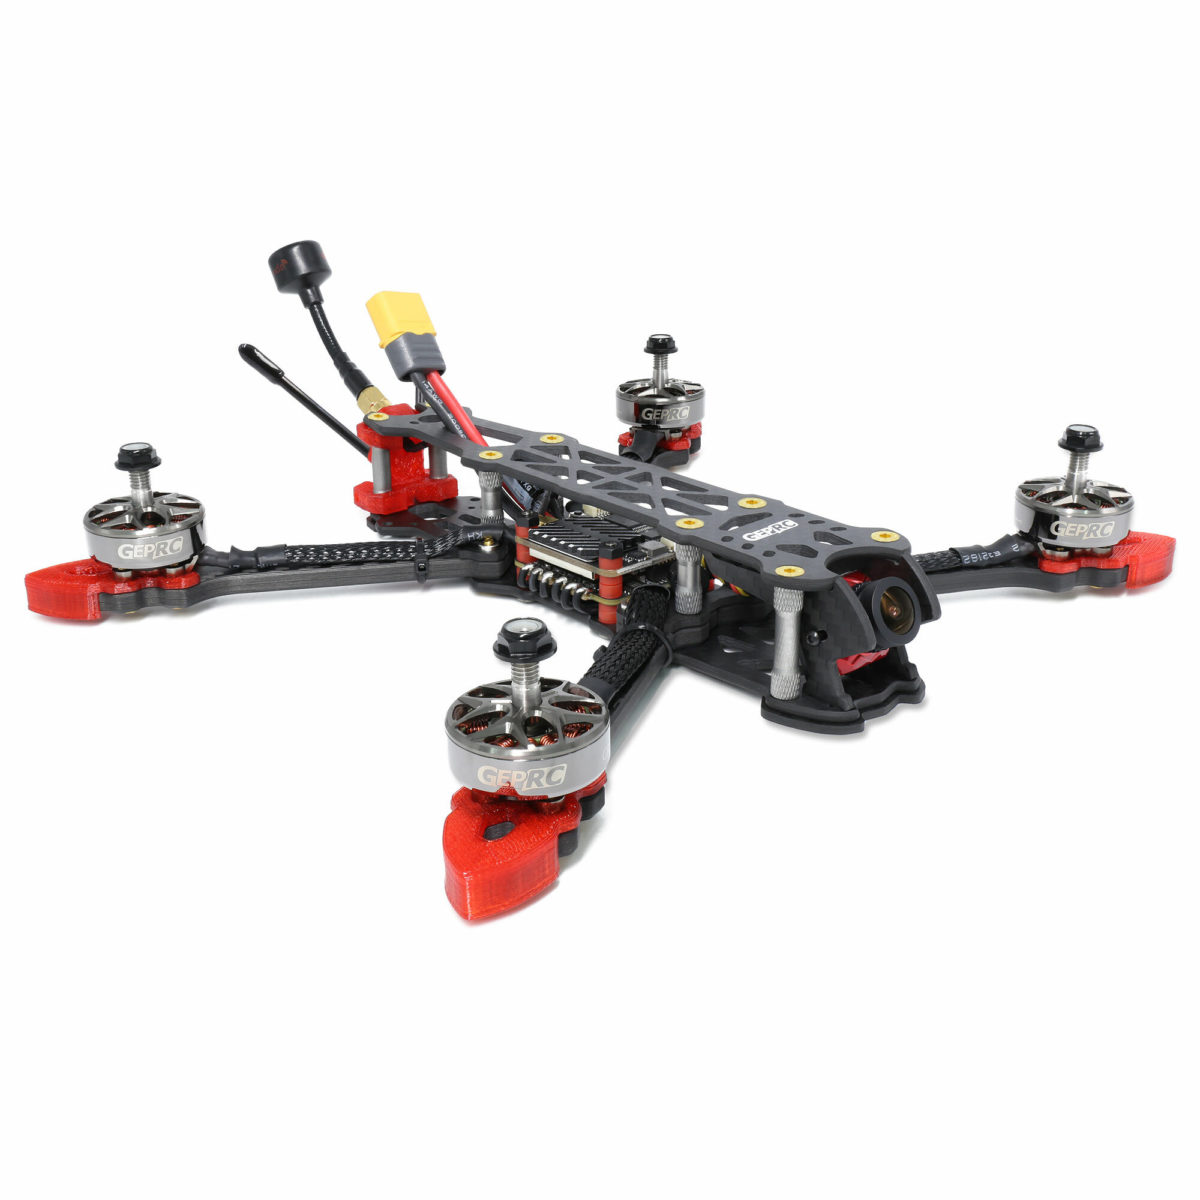 GEPRC MARK4 5 Inch 225mm 4S/6S FPV Racing Drone Freestyle PNP/BNF 2306.5 2450KV/1850KV SPAN F4 BLheli_S 45A Tower Caddx Ratel Camera